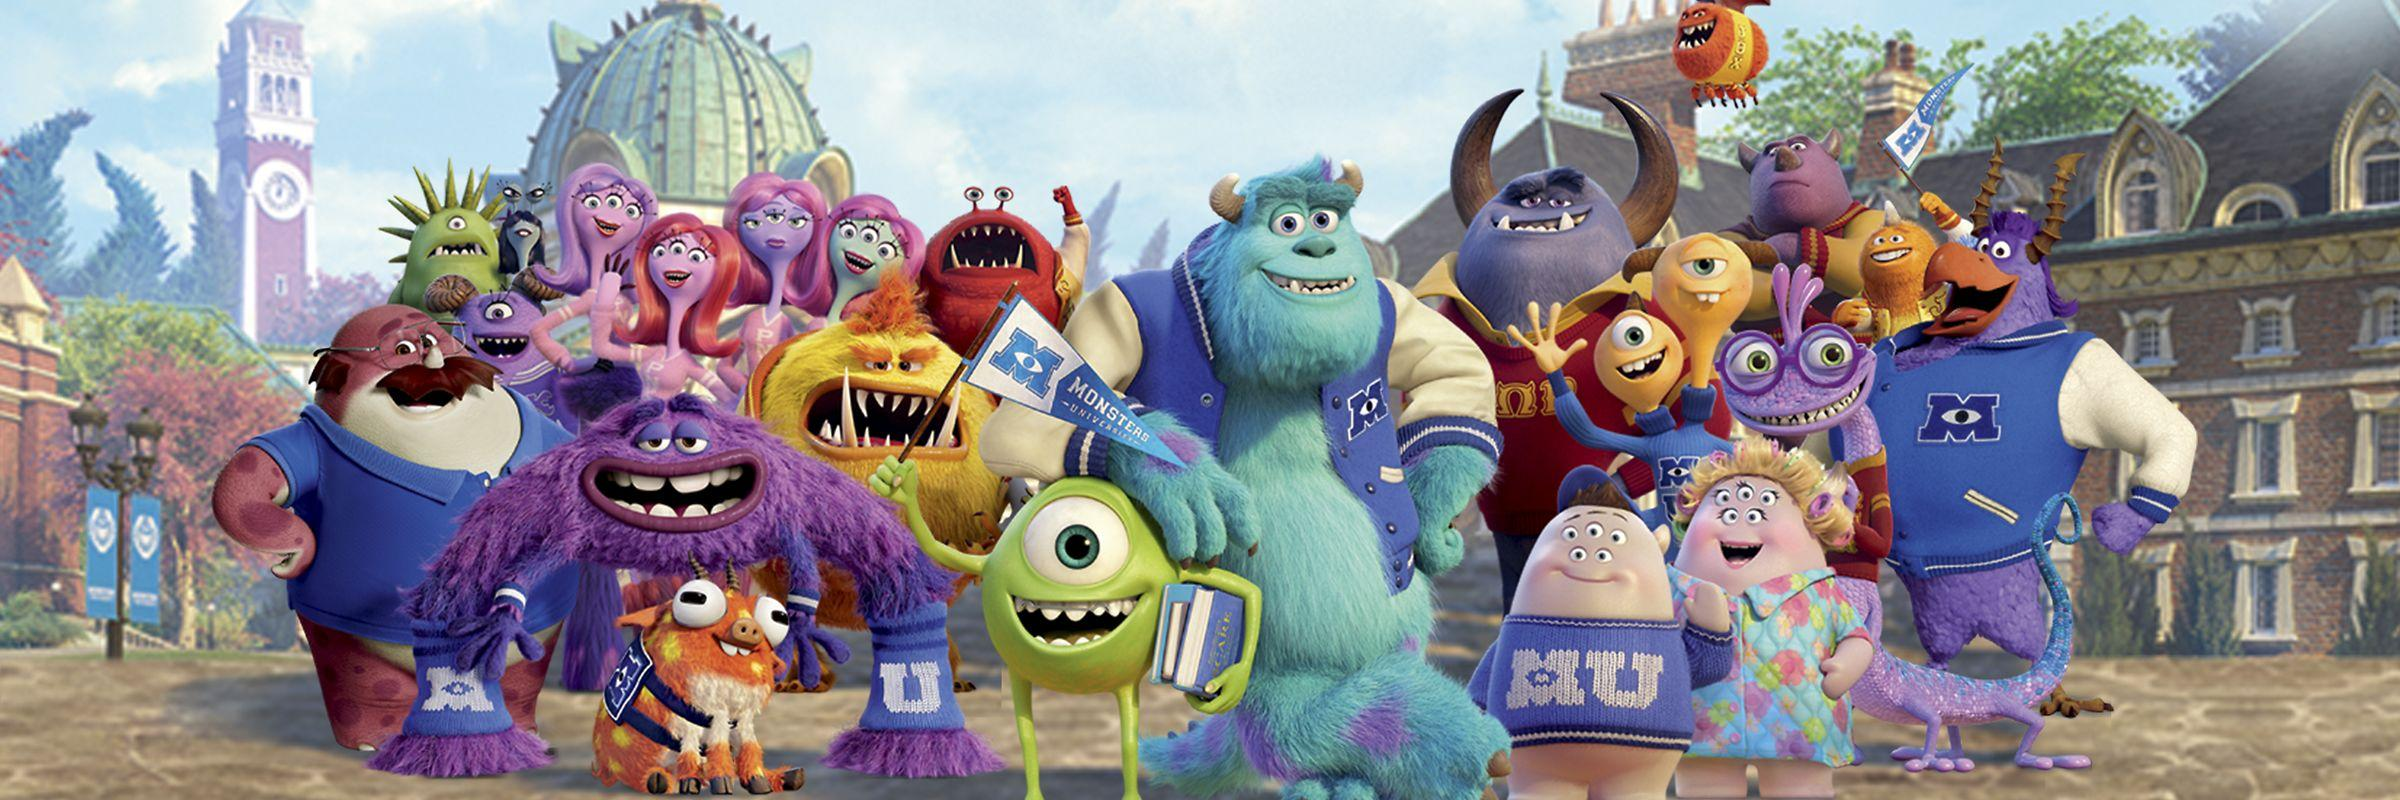 Monster Inc 3 Release Updates and Details